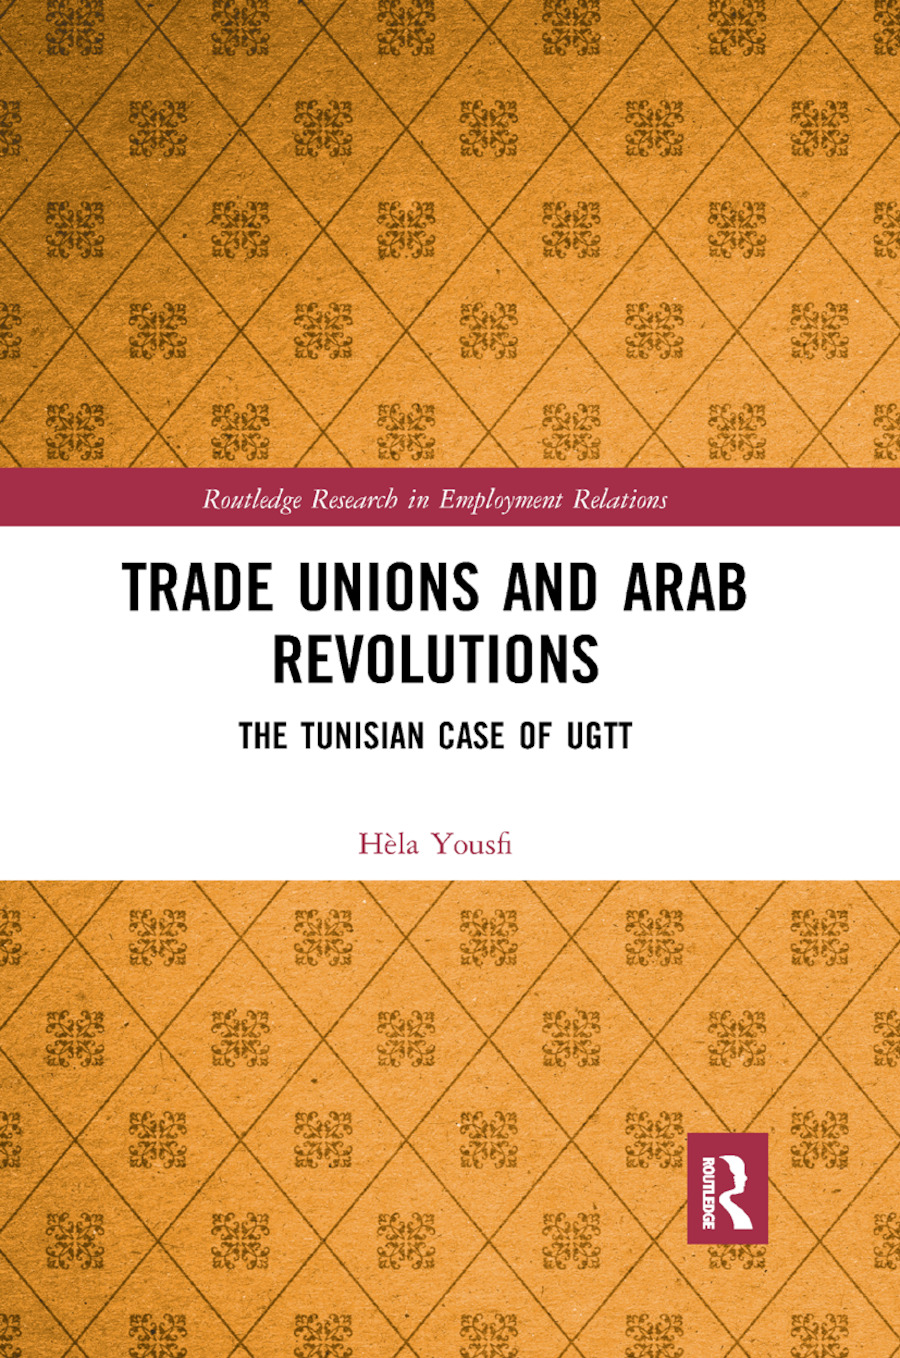 Trade Unions and Arab Revolutions: The Tunisian Case of UGTT book cover